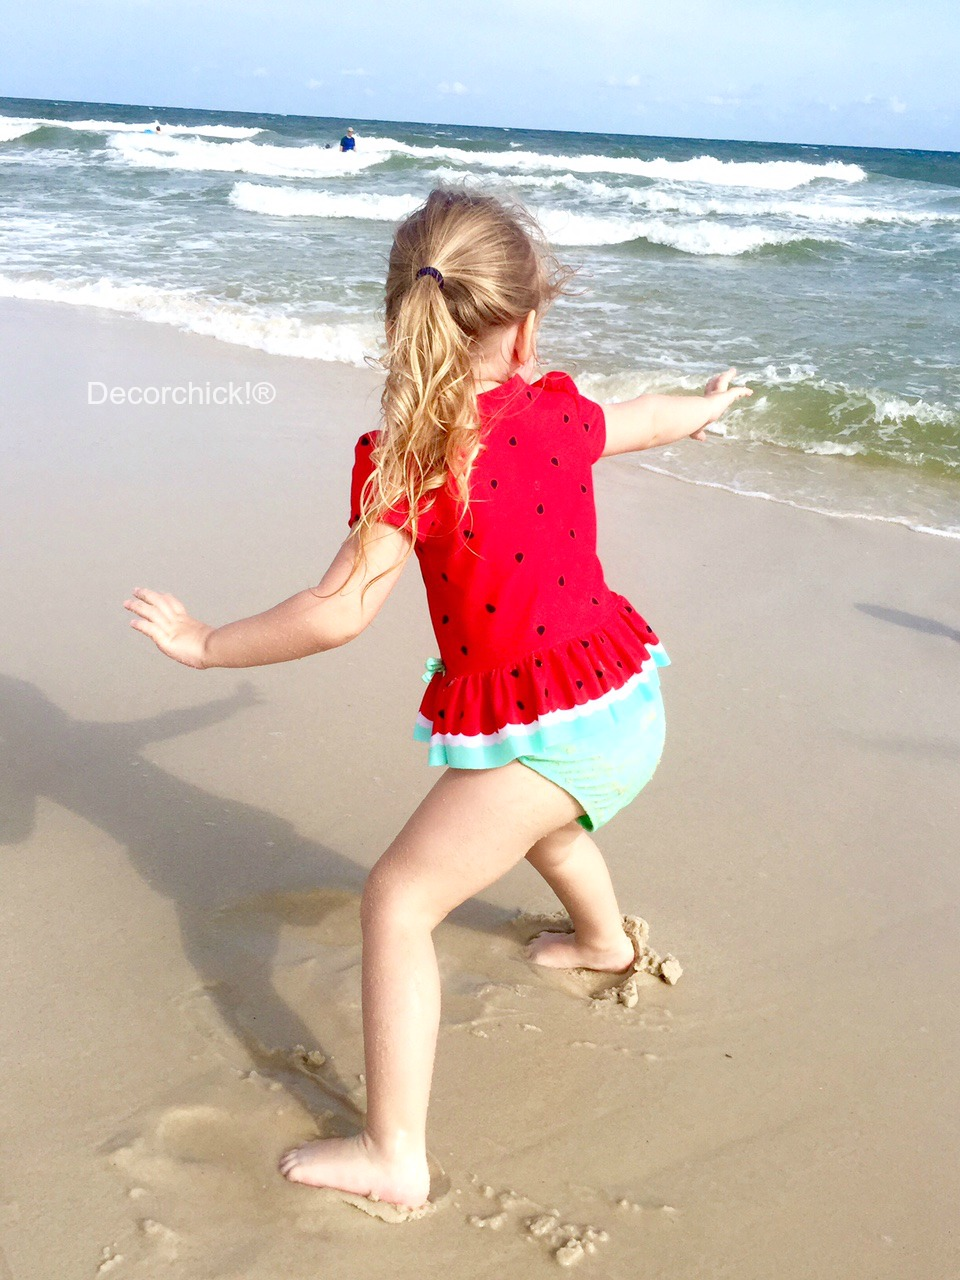 Ellie Surfing | Decorchick!®